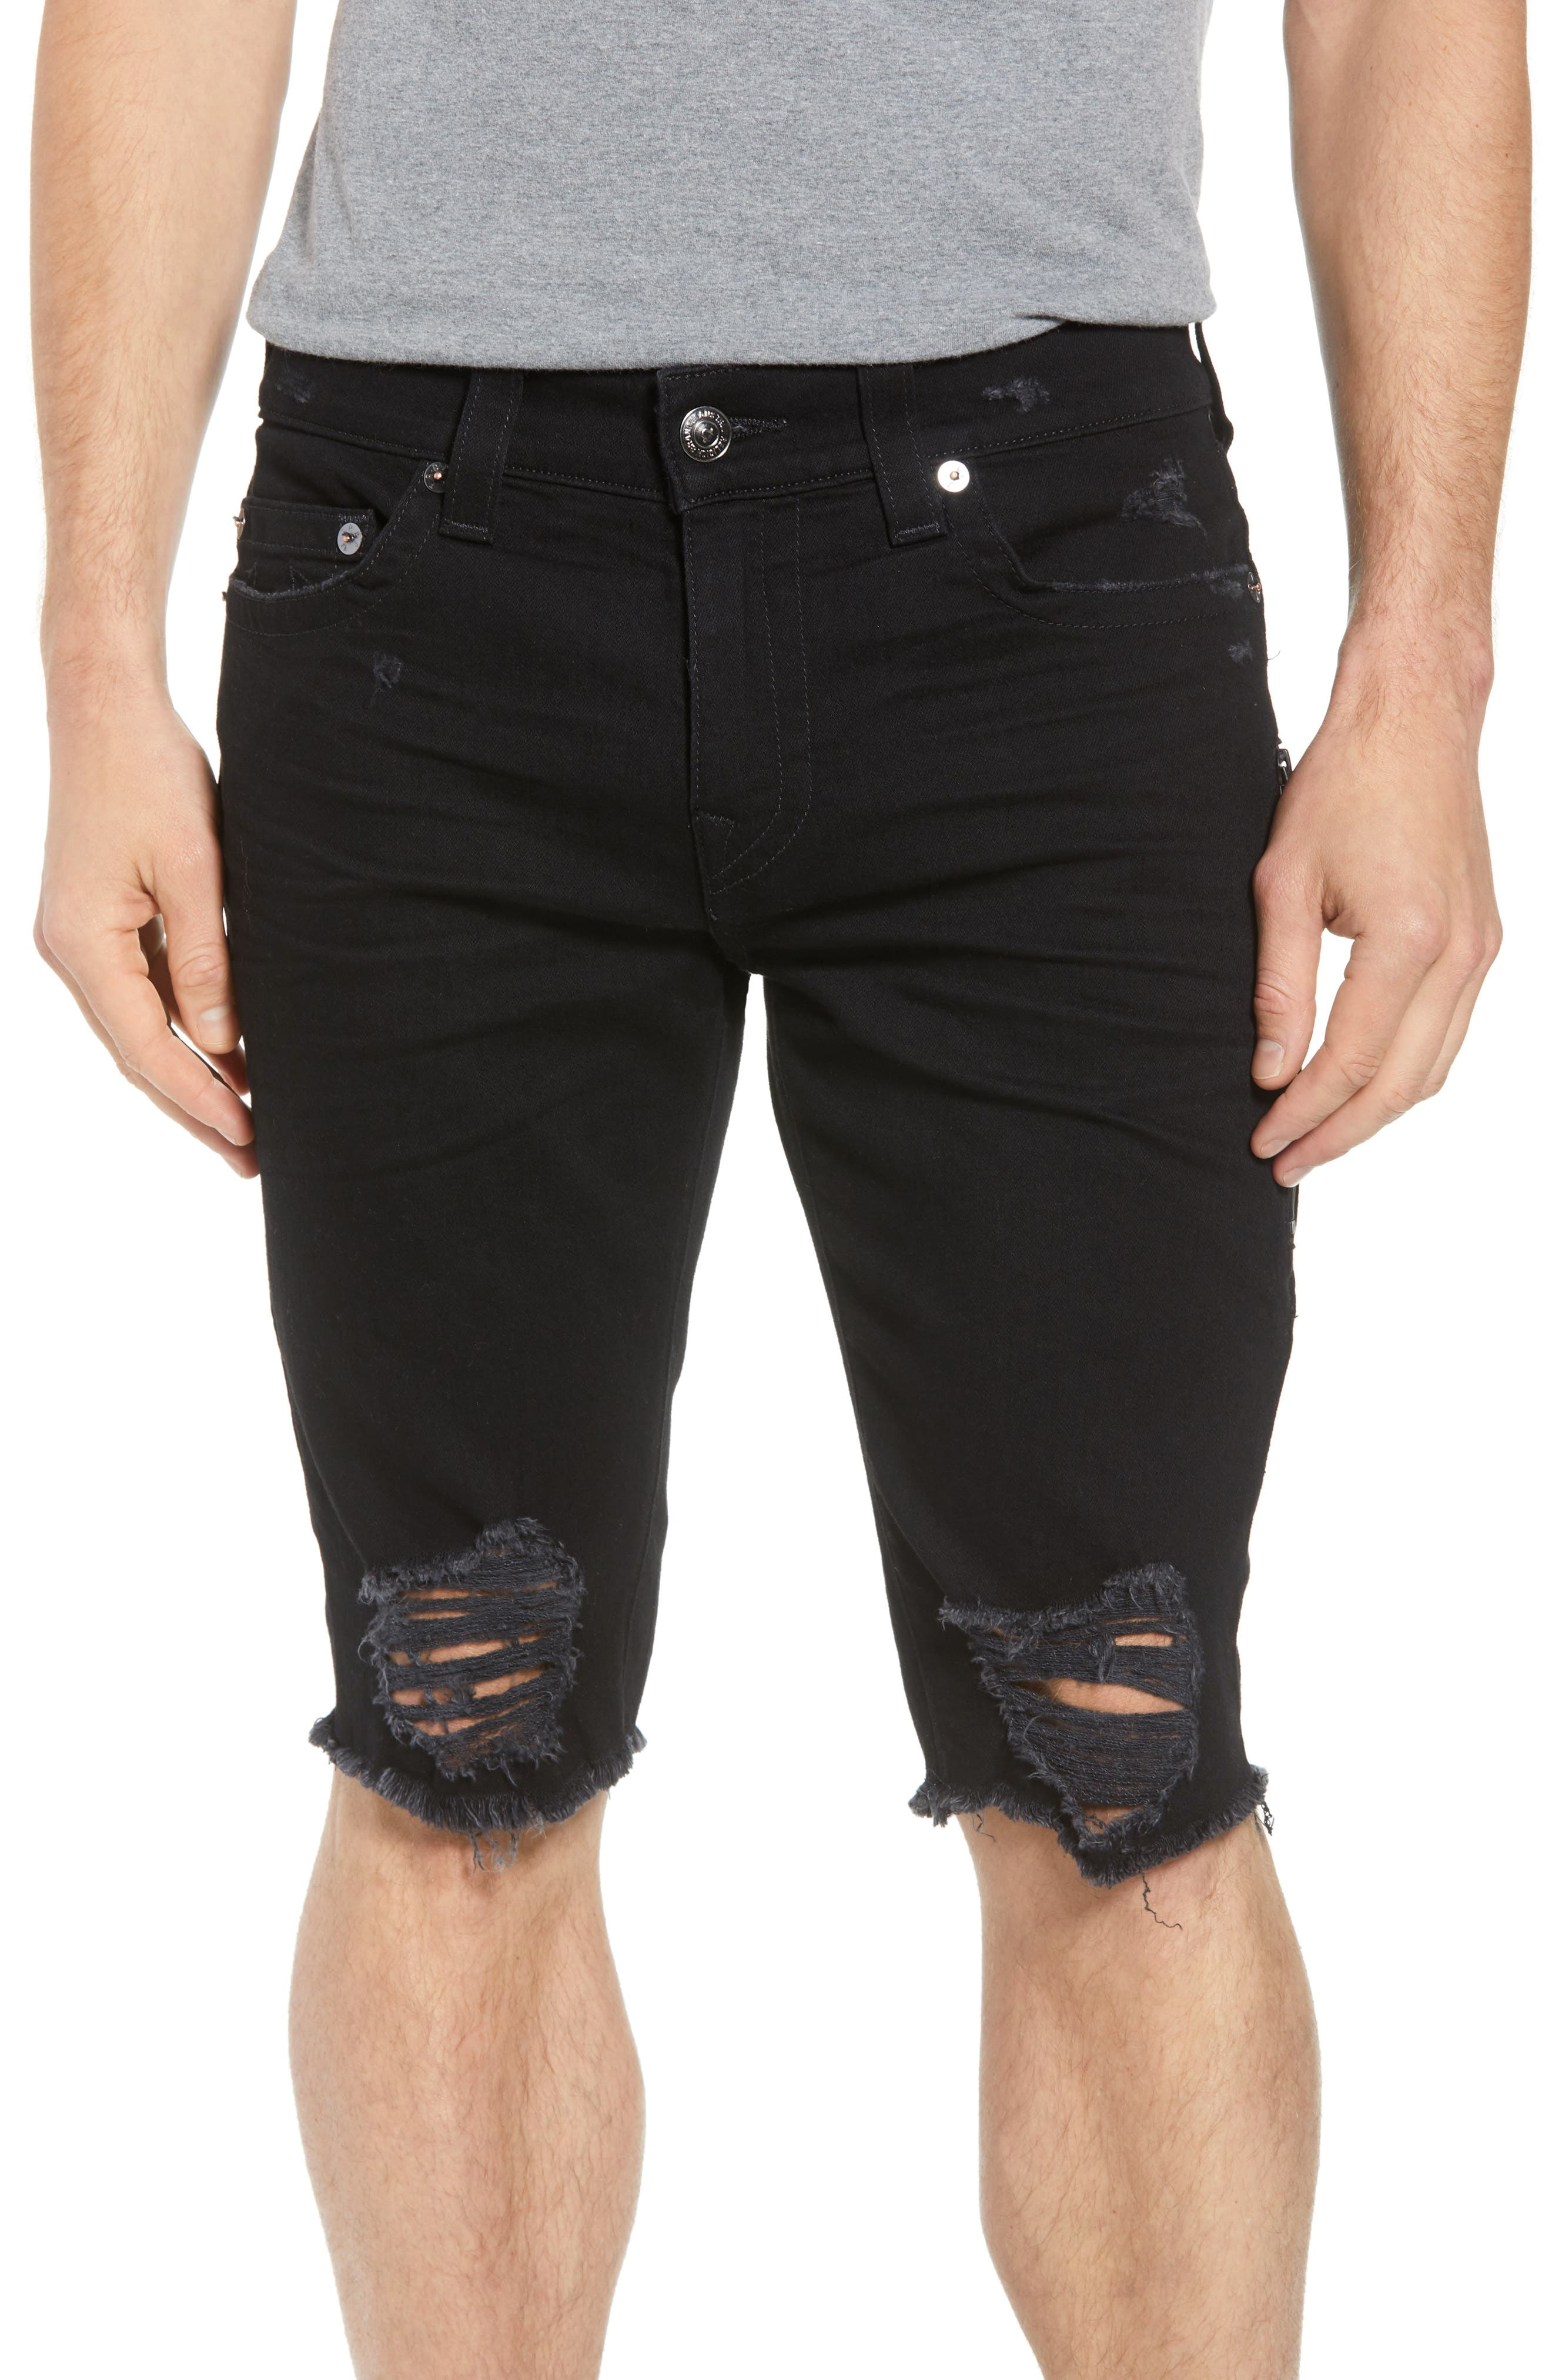 Ricky Relaxed Fit Shorts,                         Main,                         color, Chalkboard